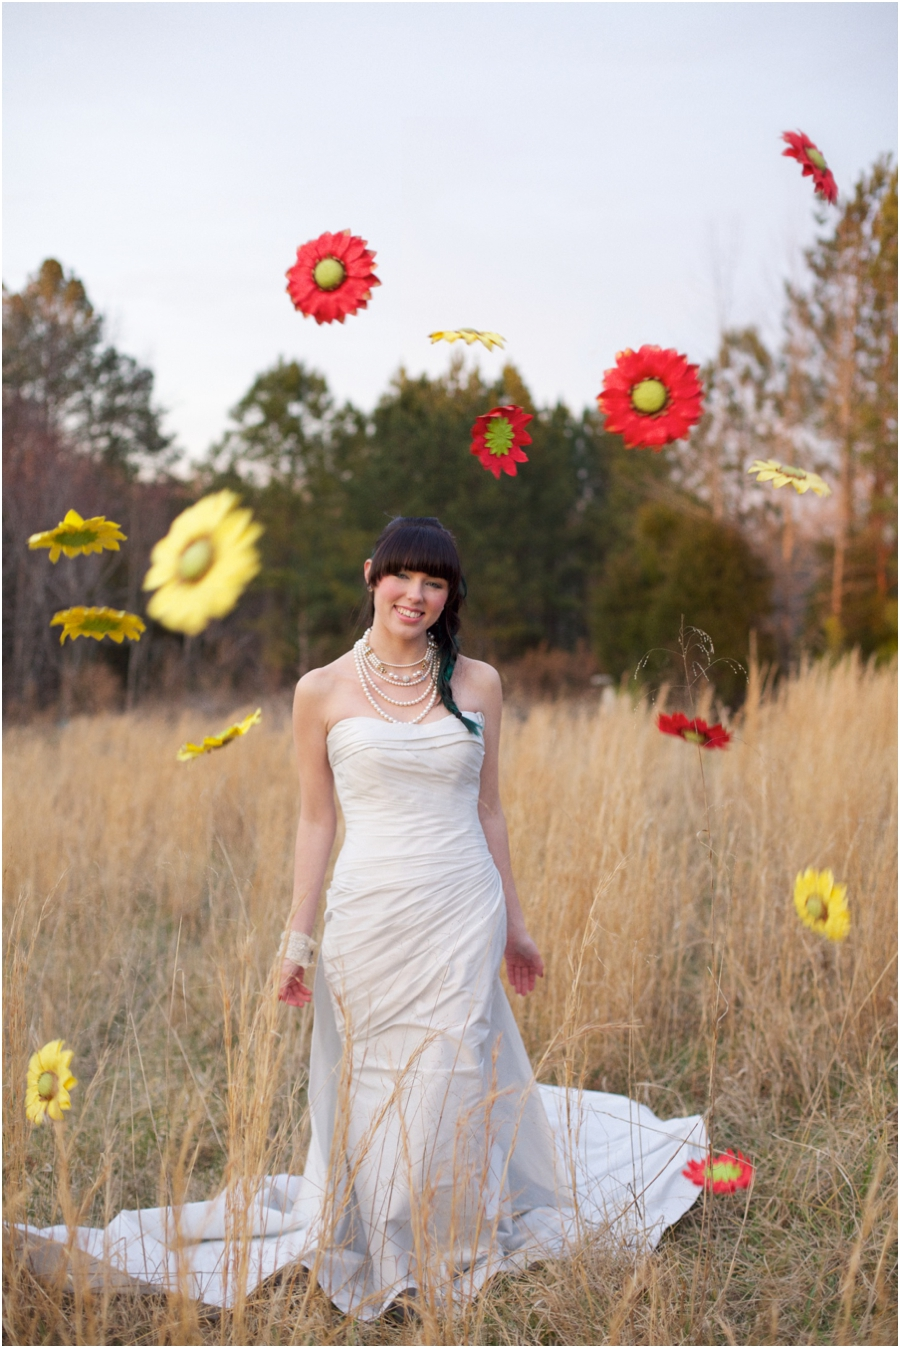 wizard of oz inspired wedding theme, bright wedding colors, rustic wedding photography